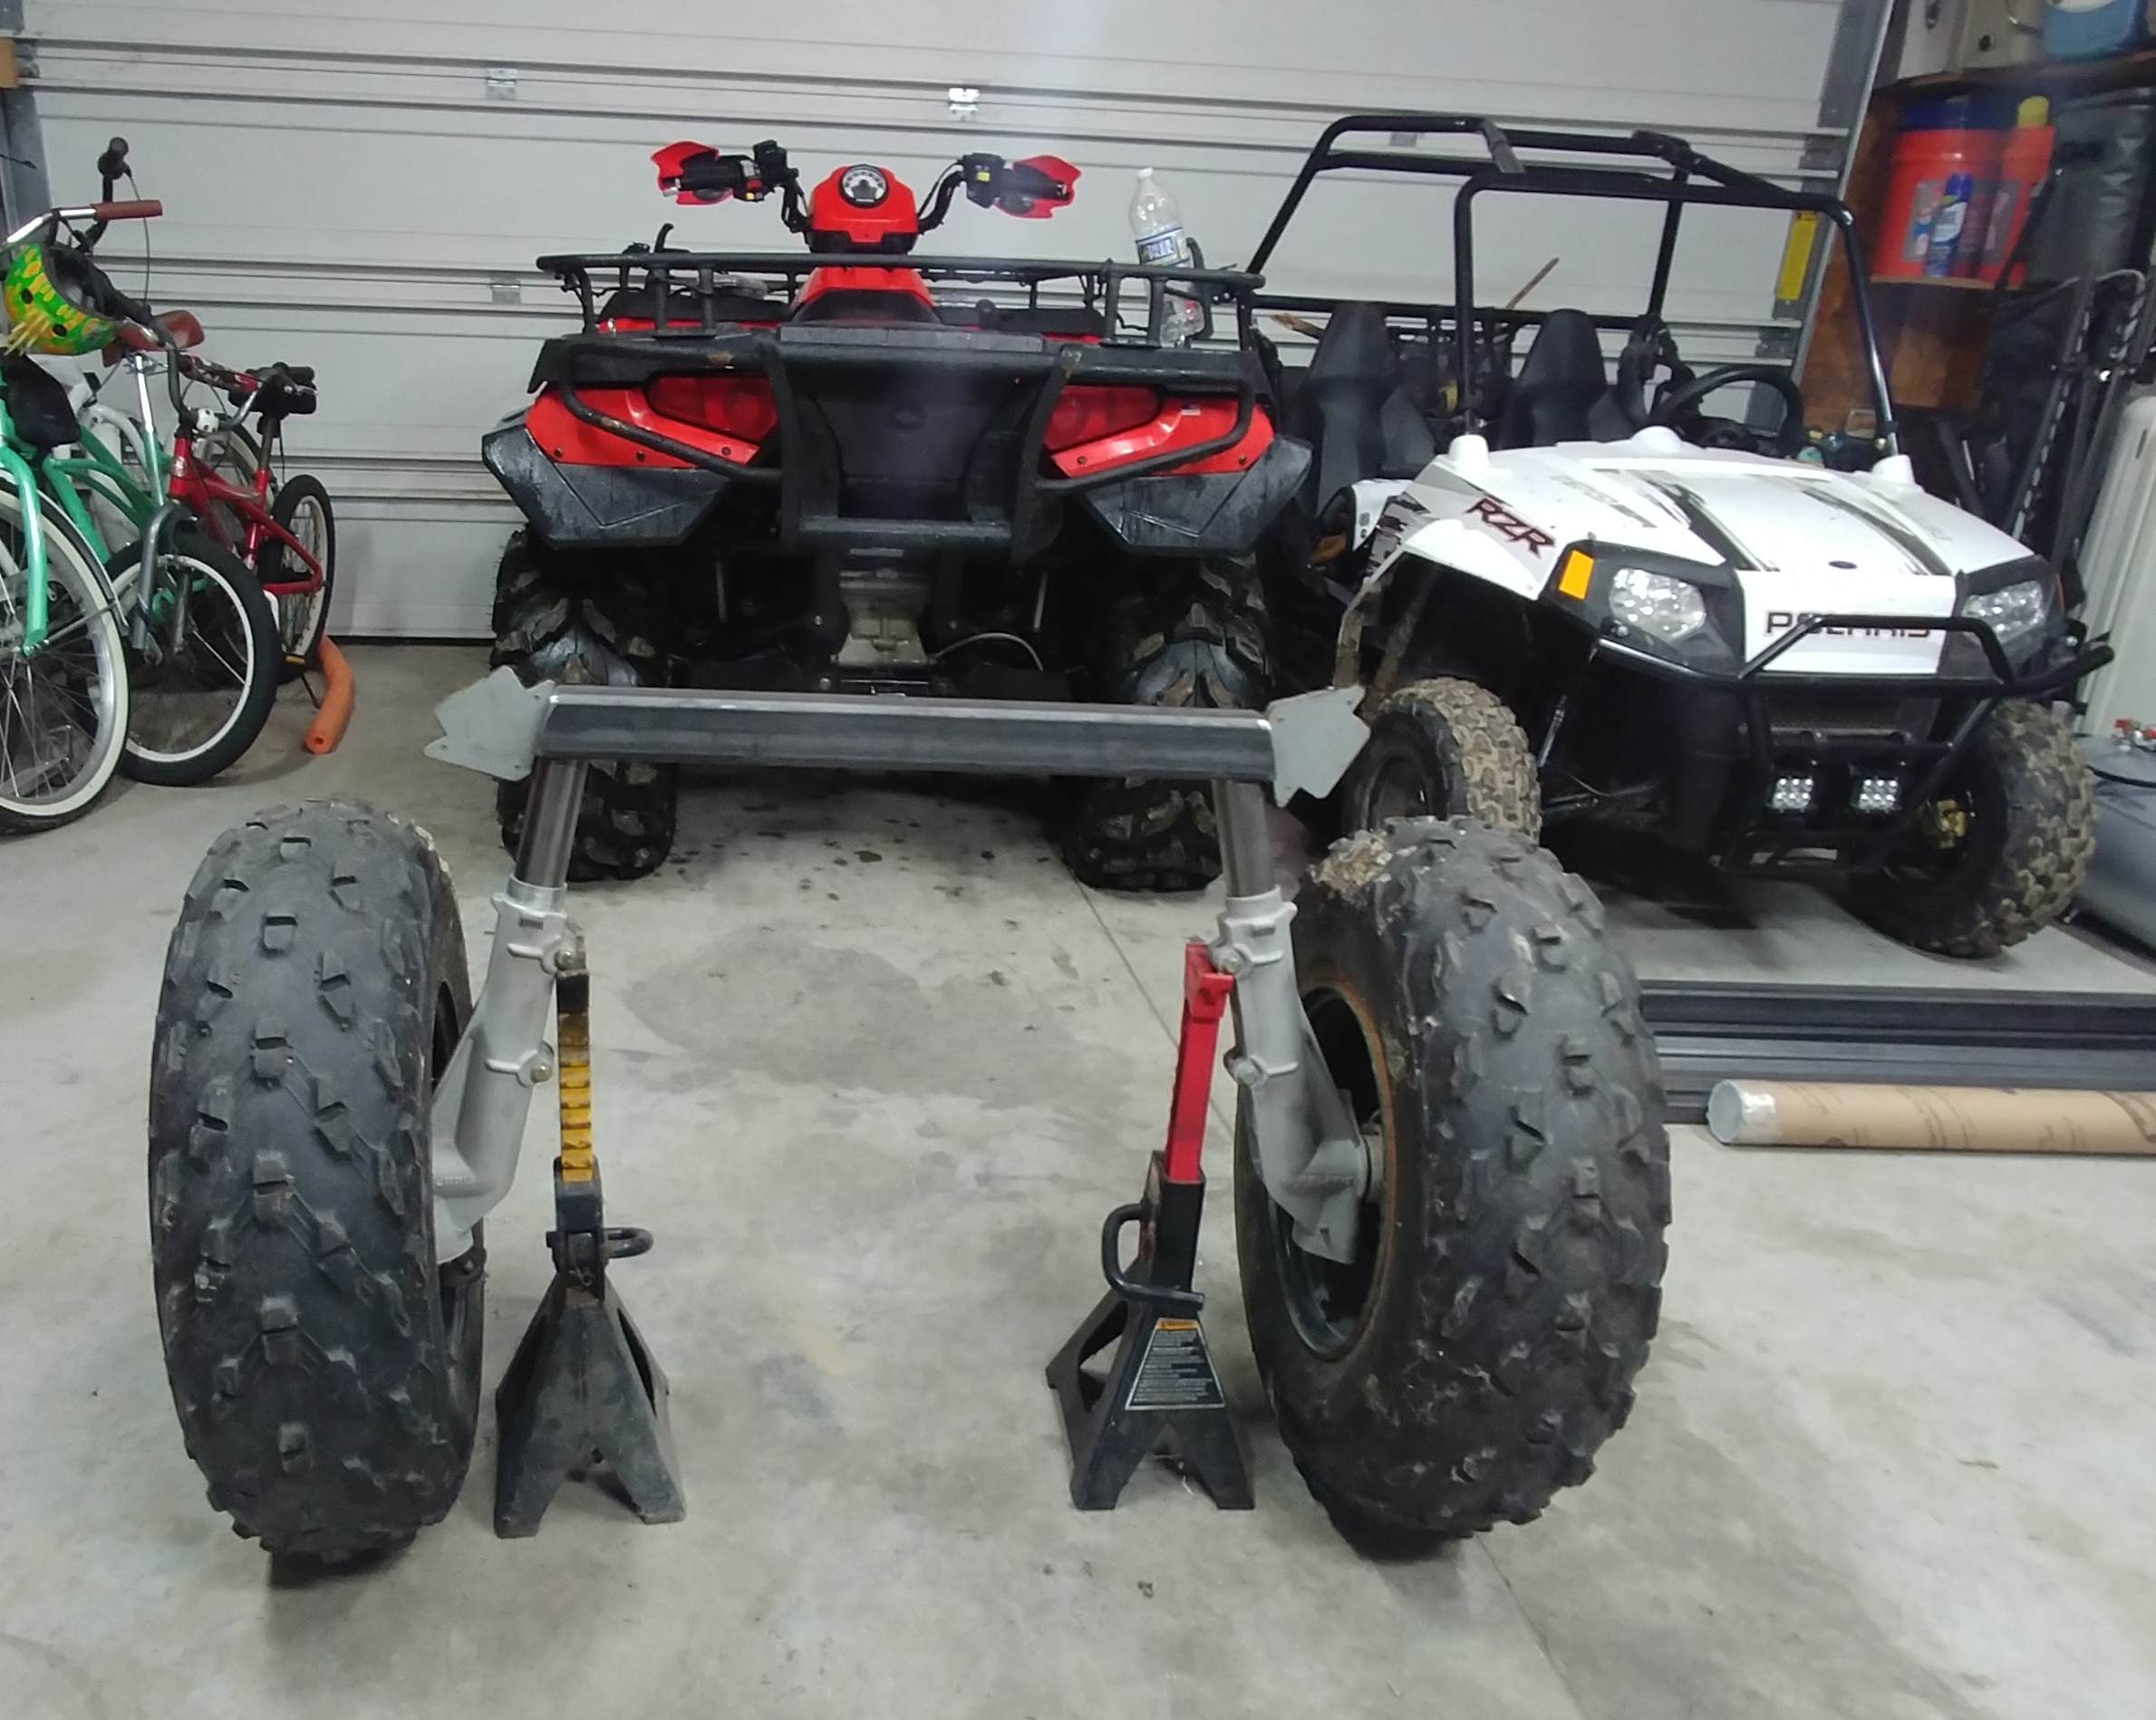 Off-road Trailer Build Using Polaris parts-1121181644b-edited.jpg